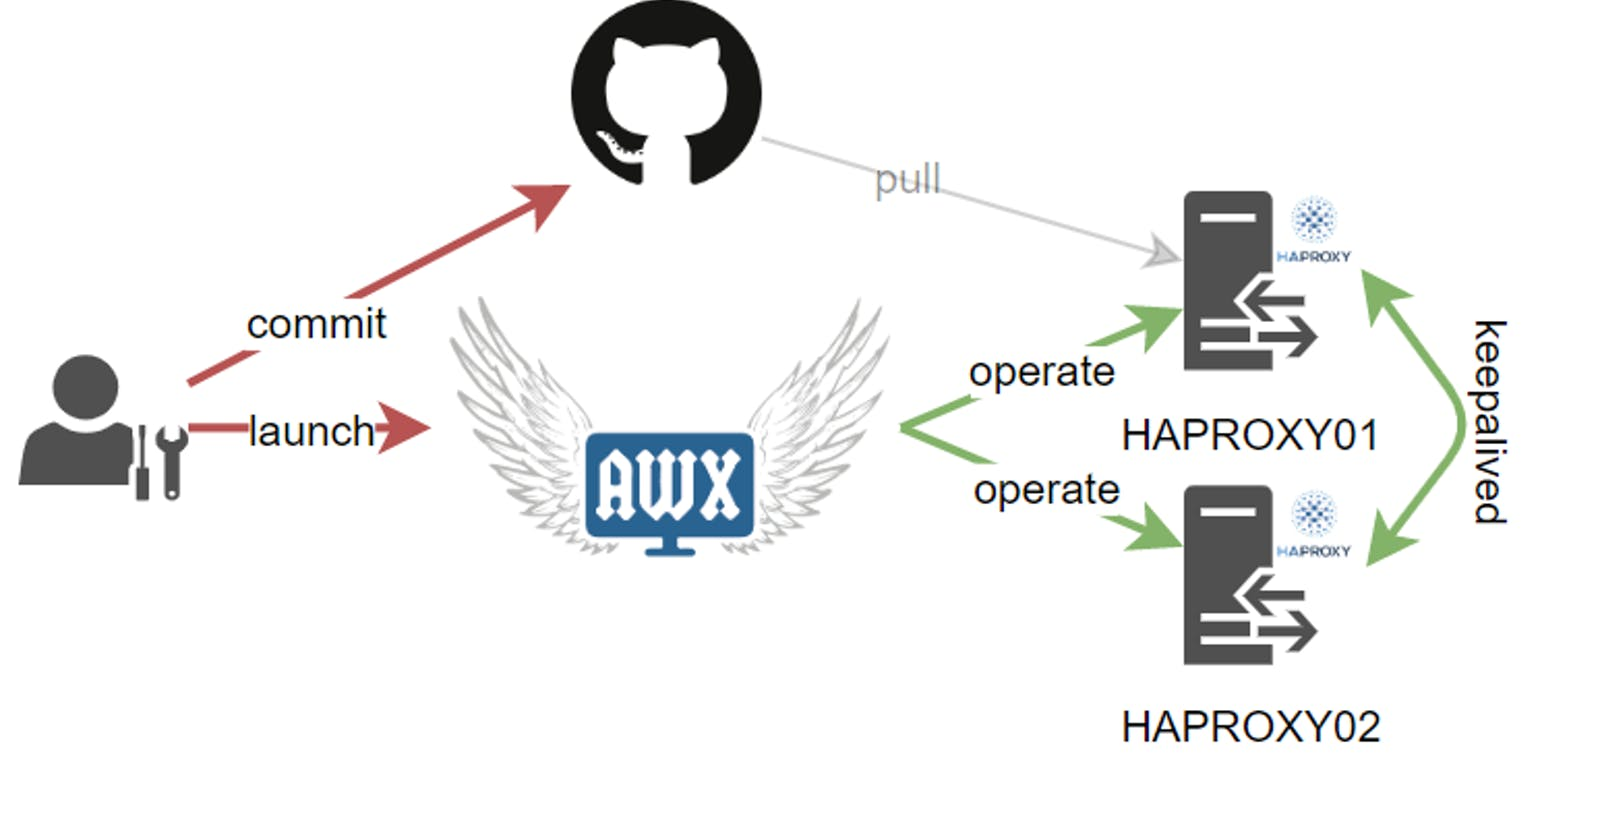 Automate HAproxy with ansible and AWX